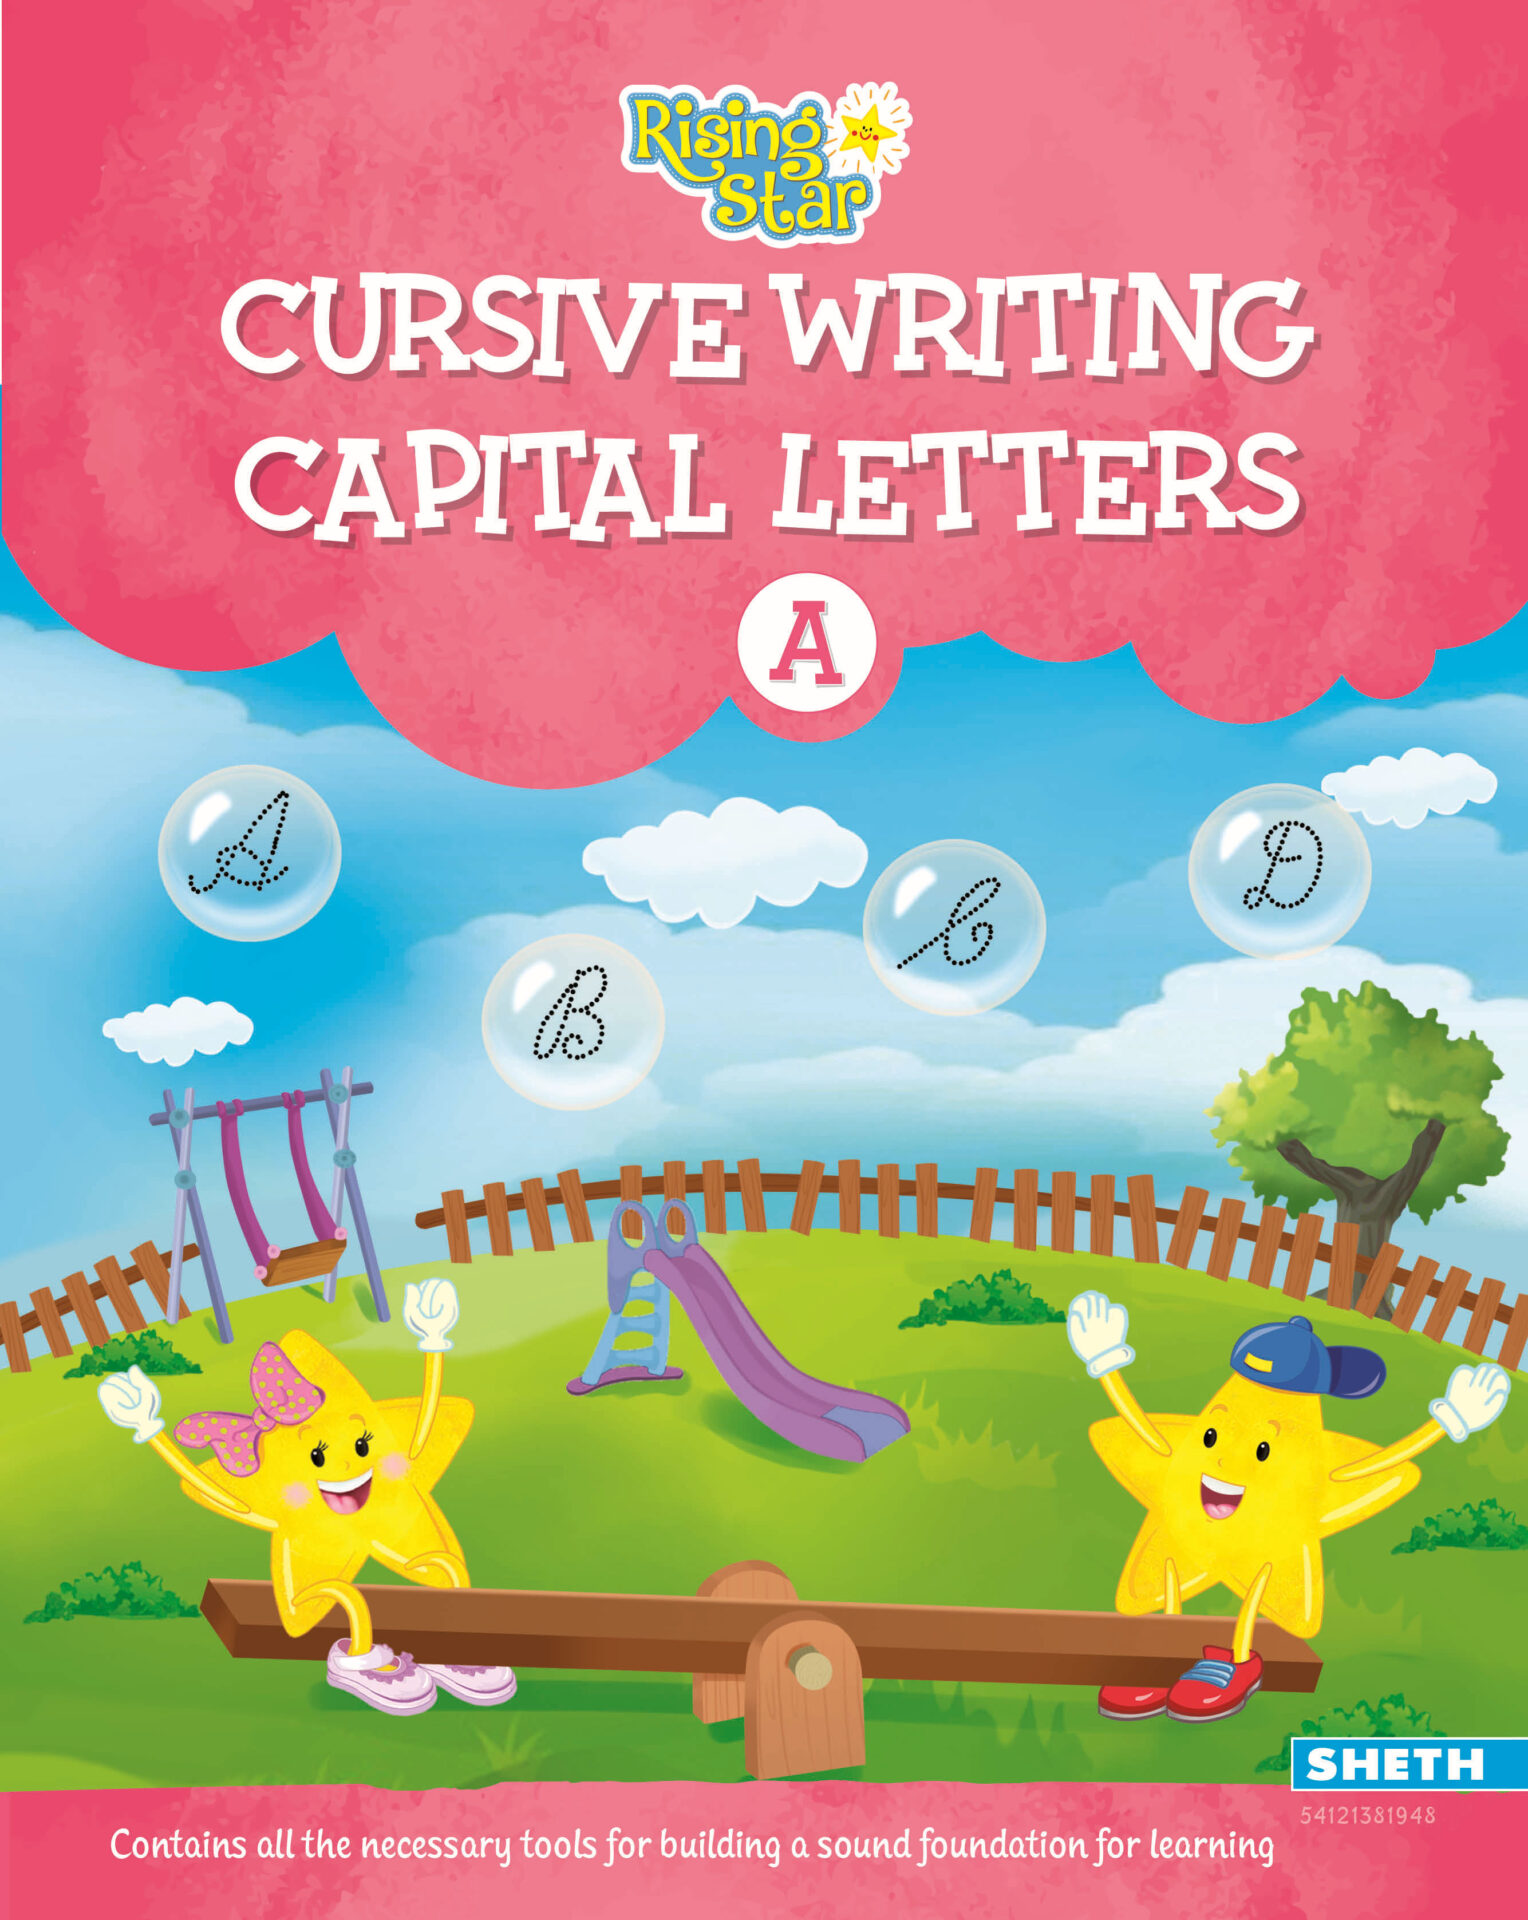 Rising Star Cursive Writing Capital Letters A 01 1